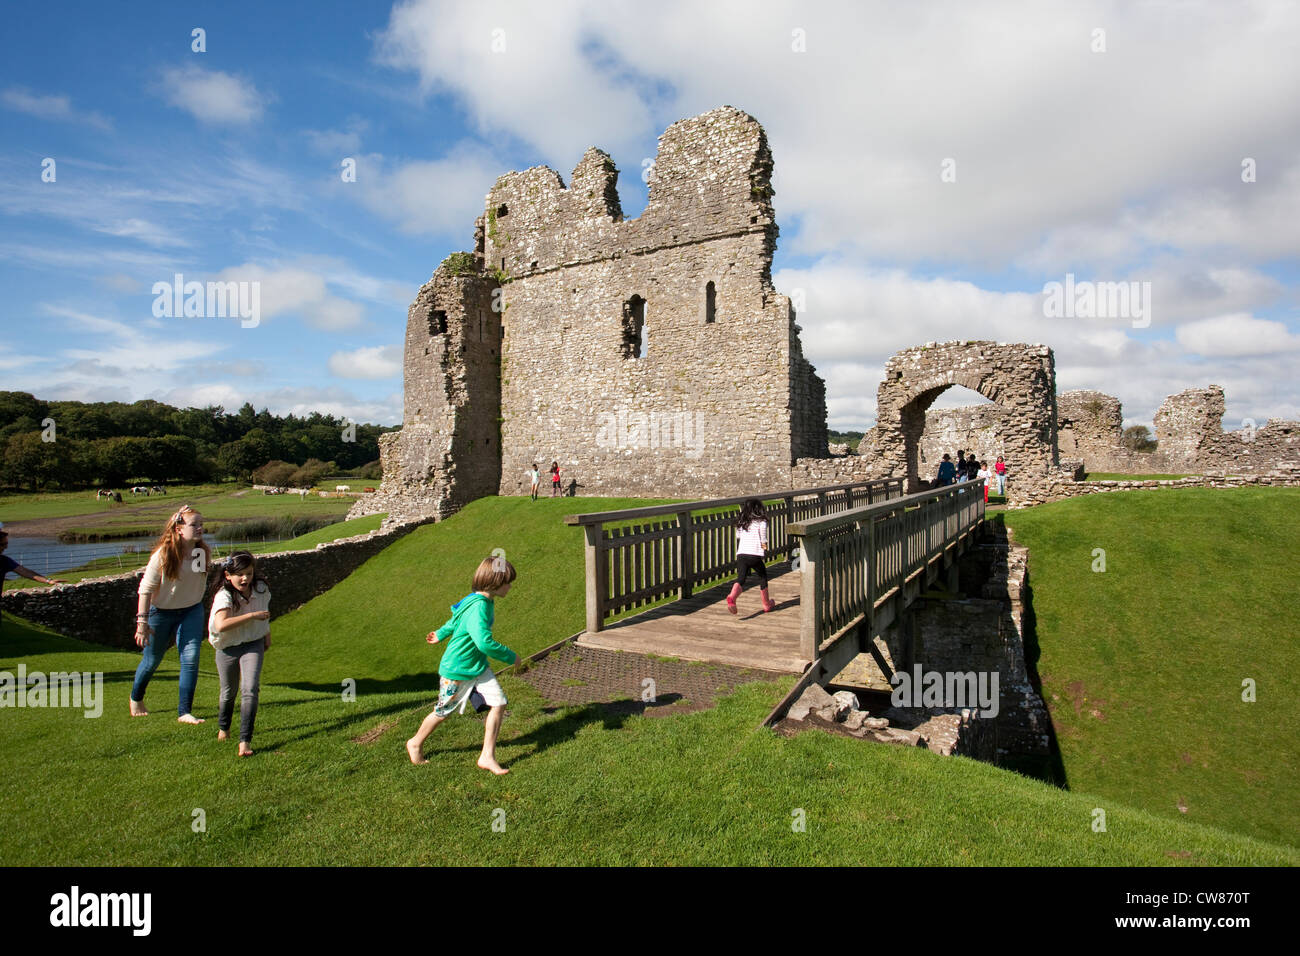 Ogmore Castle, Ogmore-by-Sea, Vale of Glamorgan, Wales - Stock Image